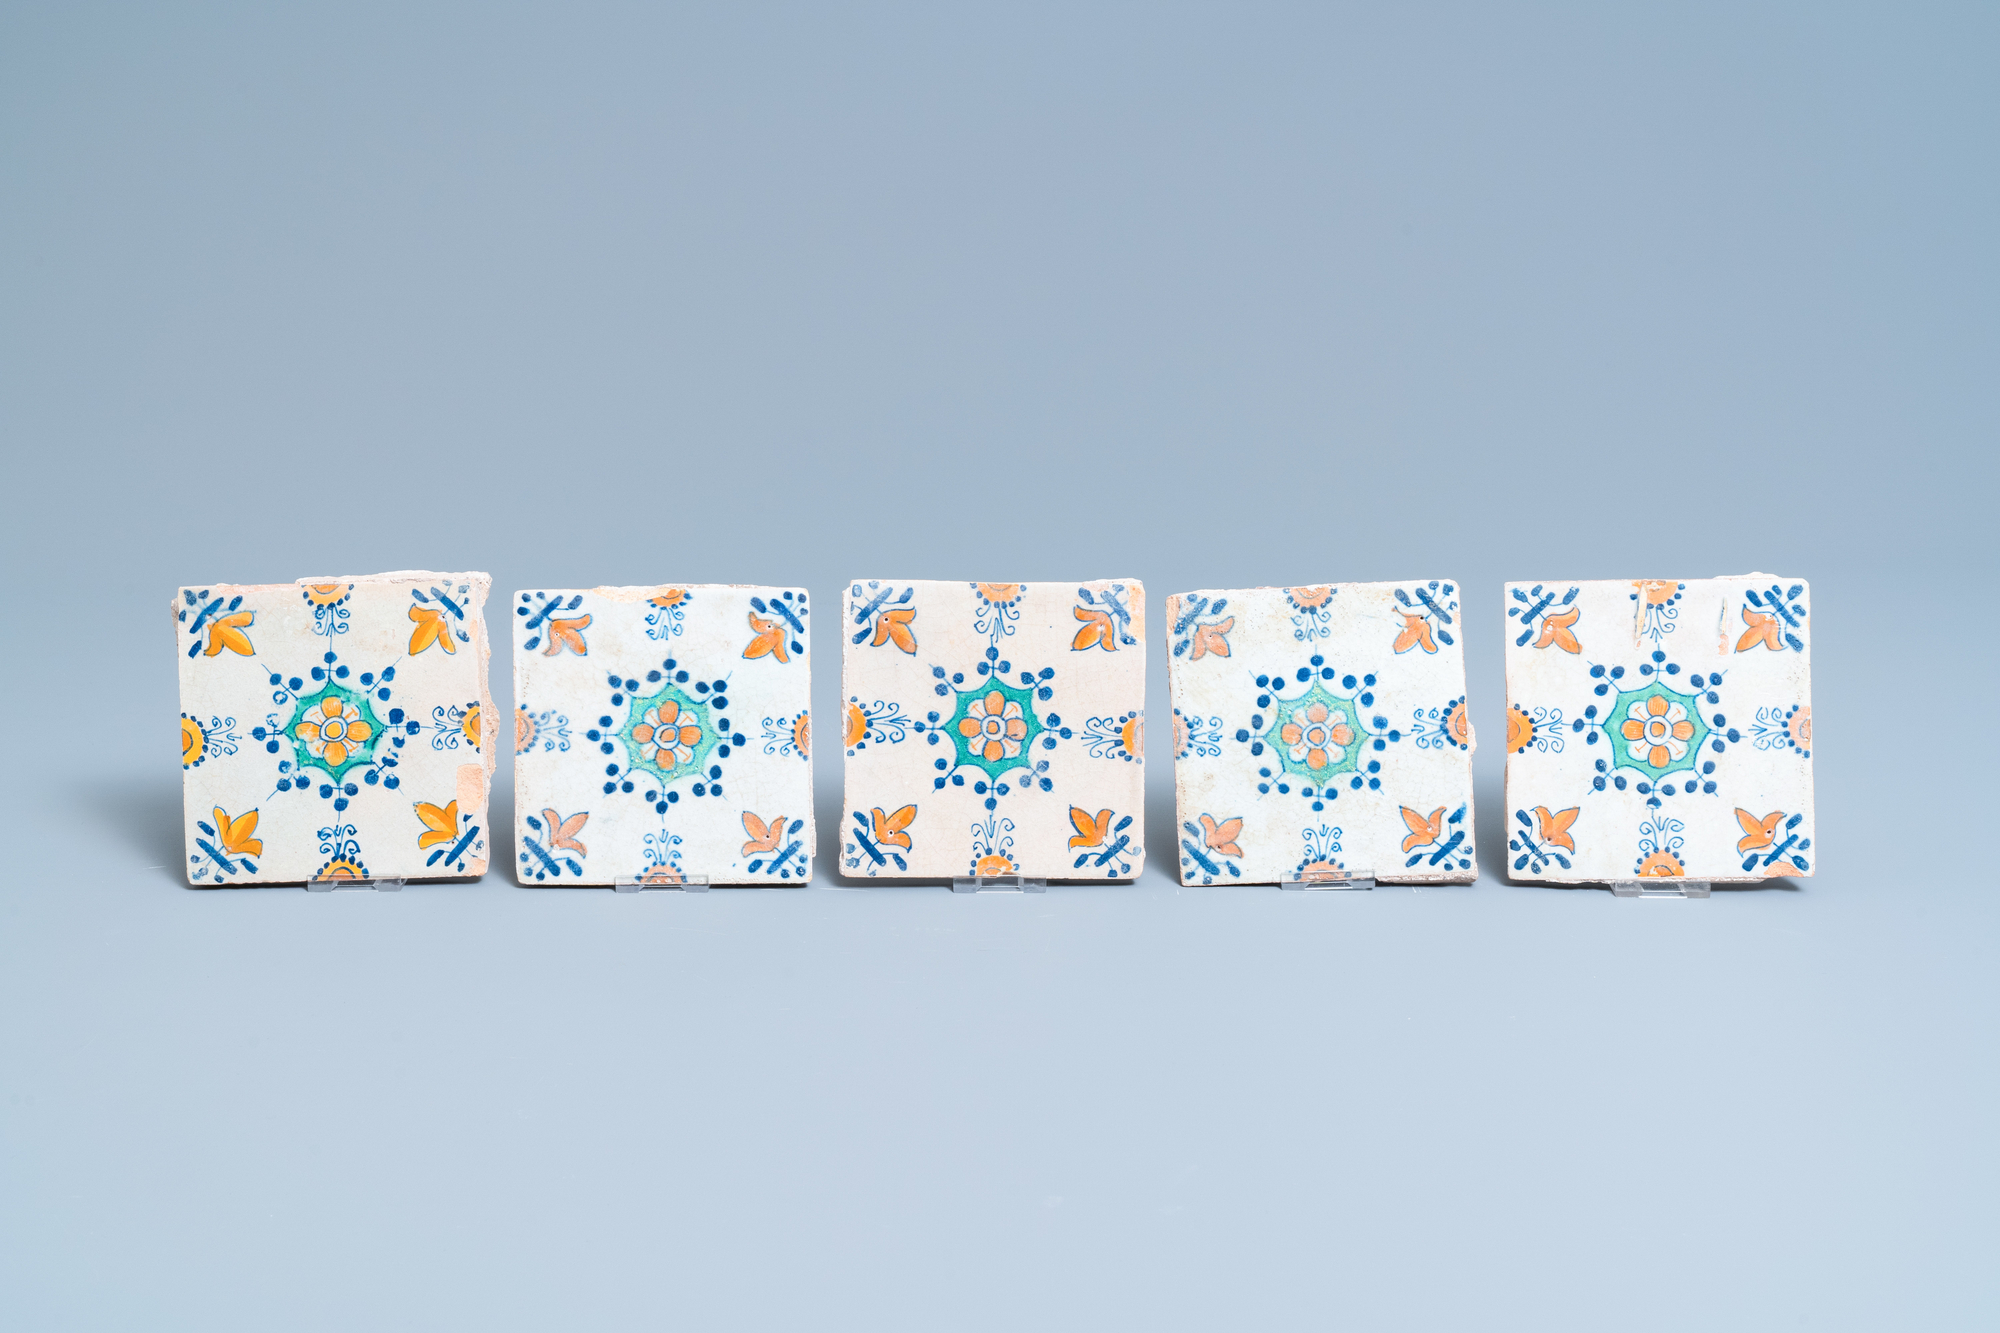 Ten polychrome Dutch Delft tiles with flowers and ornaments, 17th C. - Image 3 of 3